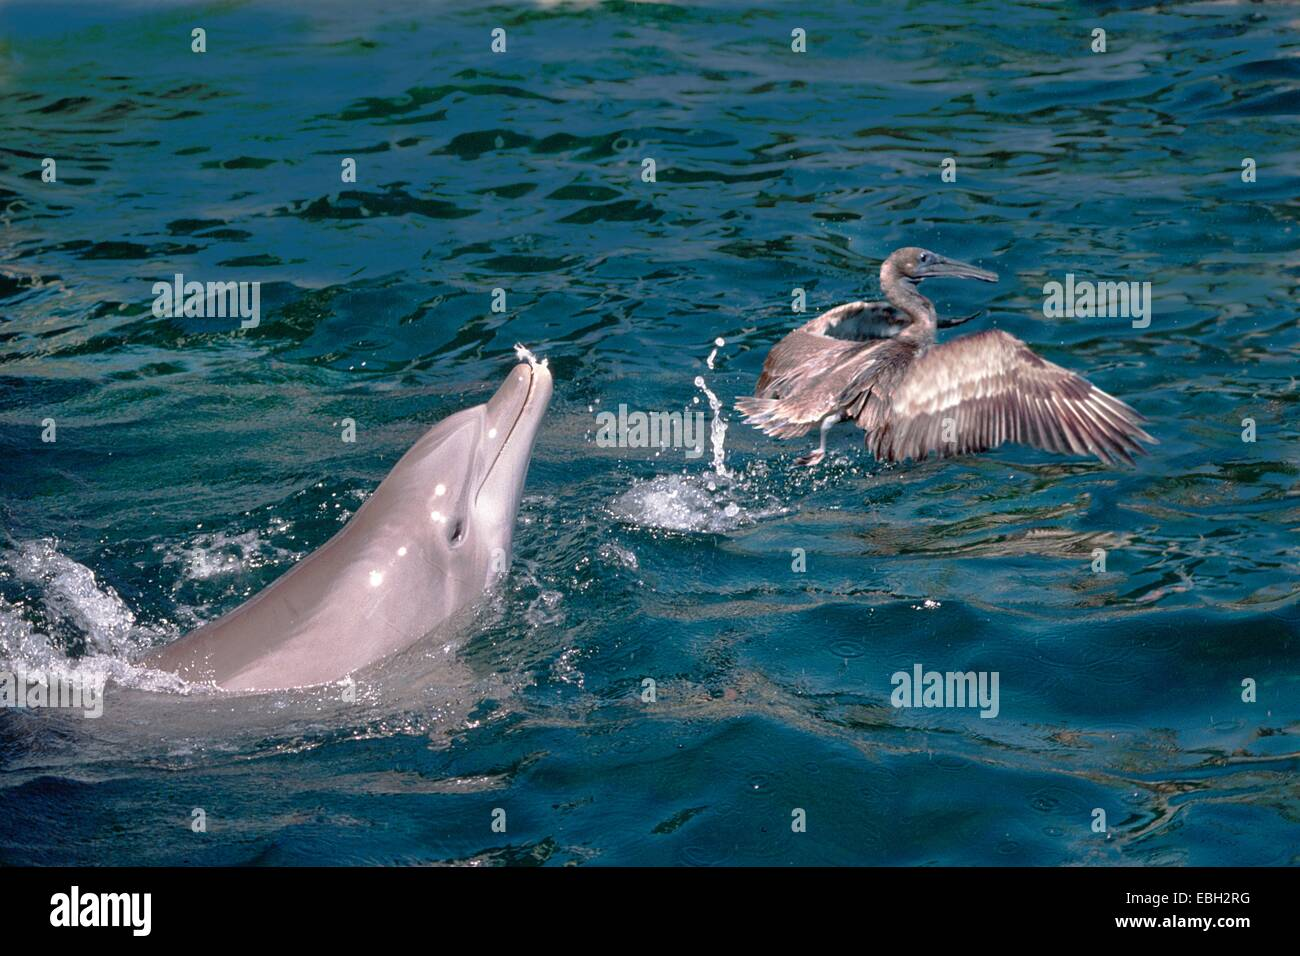 bottlenosed dolphin, common bottle-nosed dolphin (Tursiops truncatus), pricking a pelican. - Stock Image